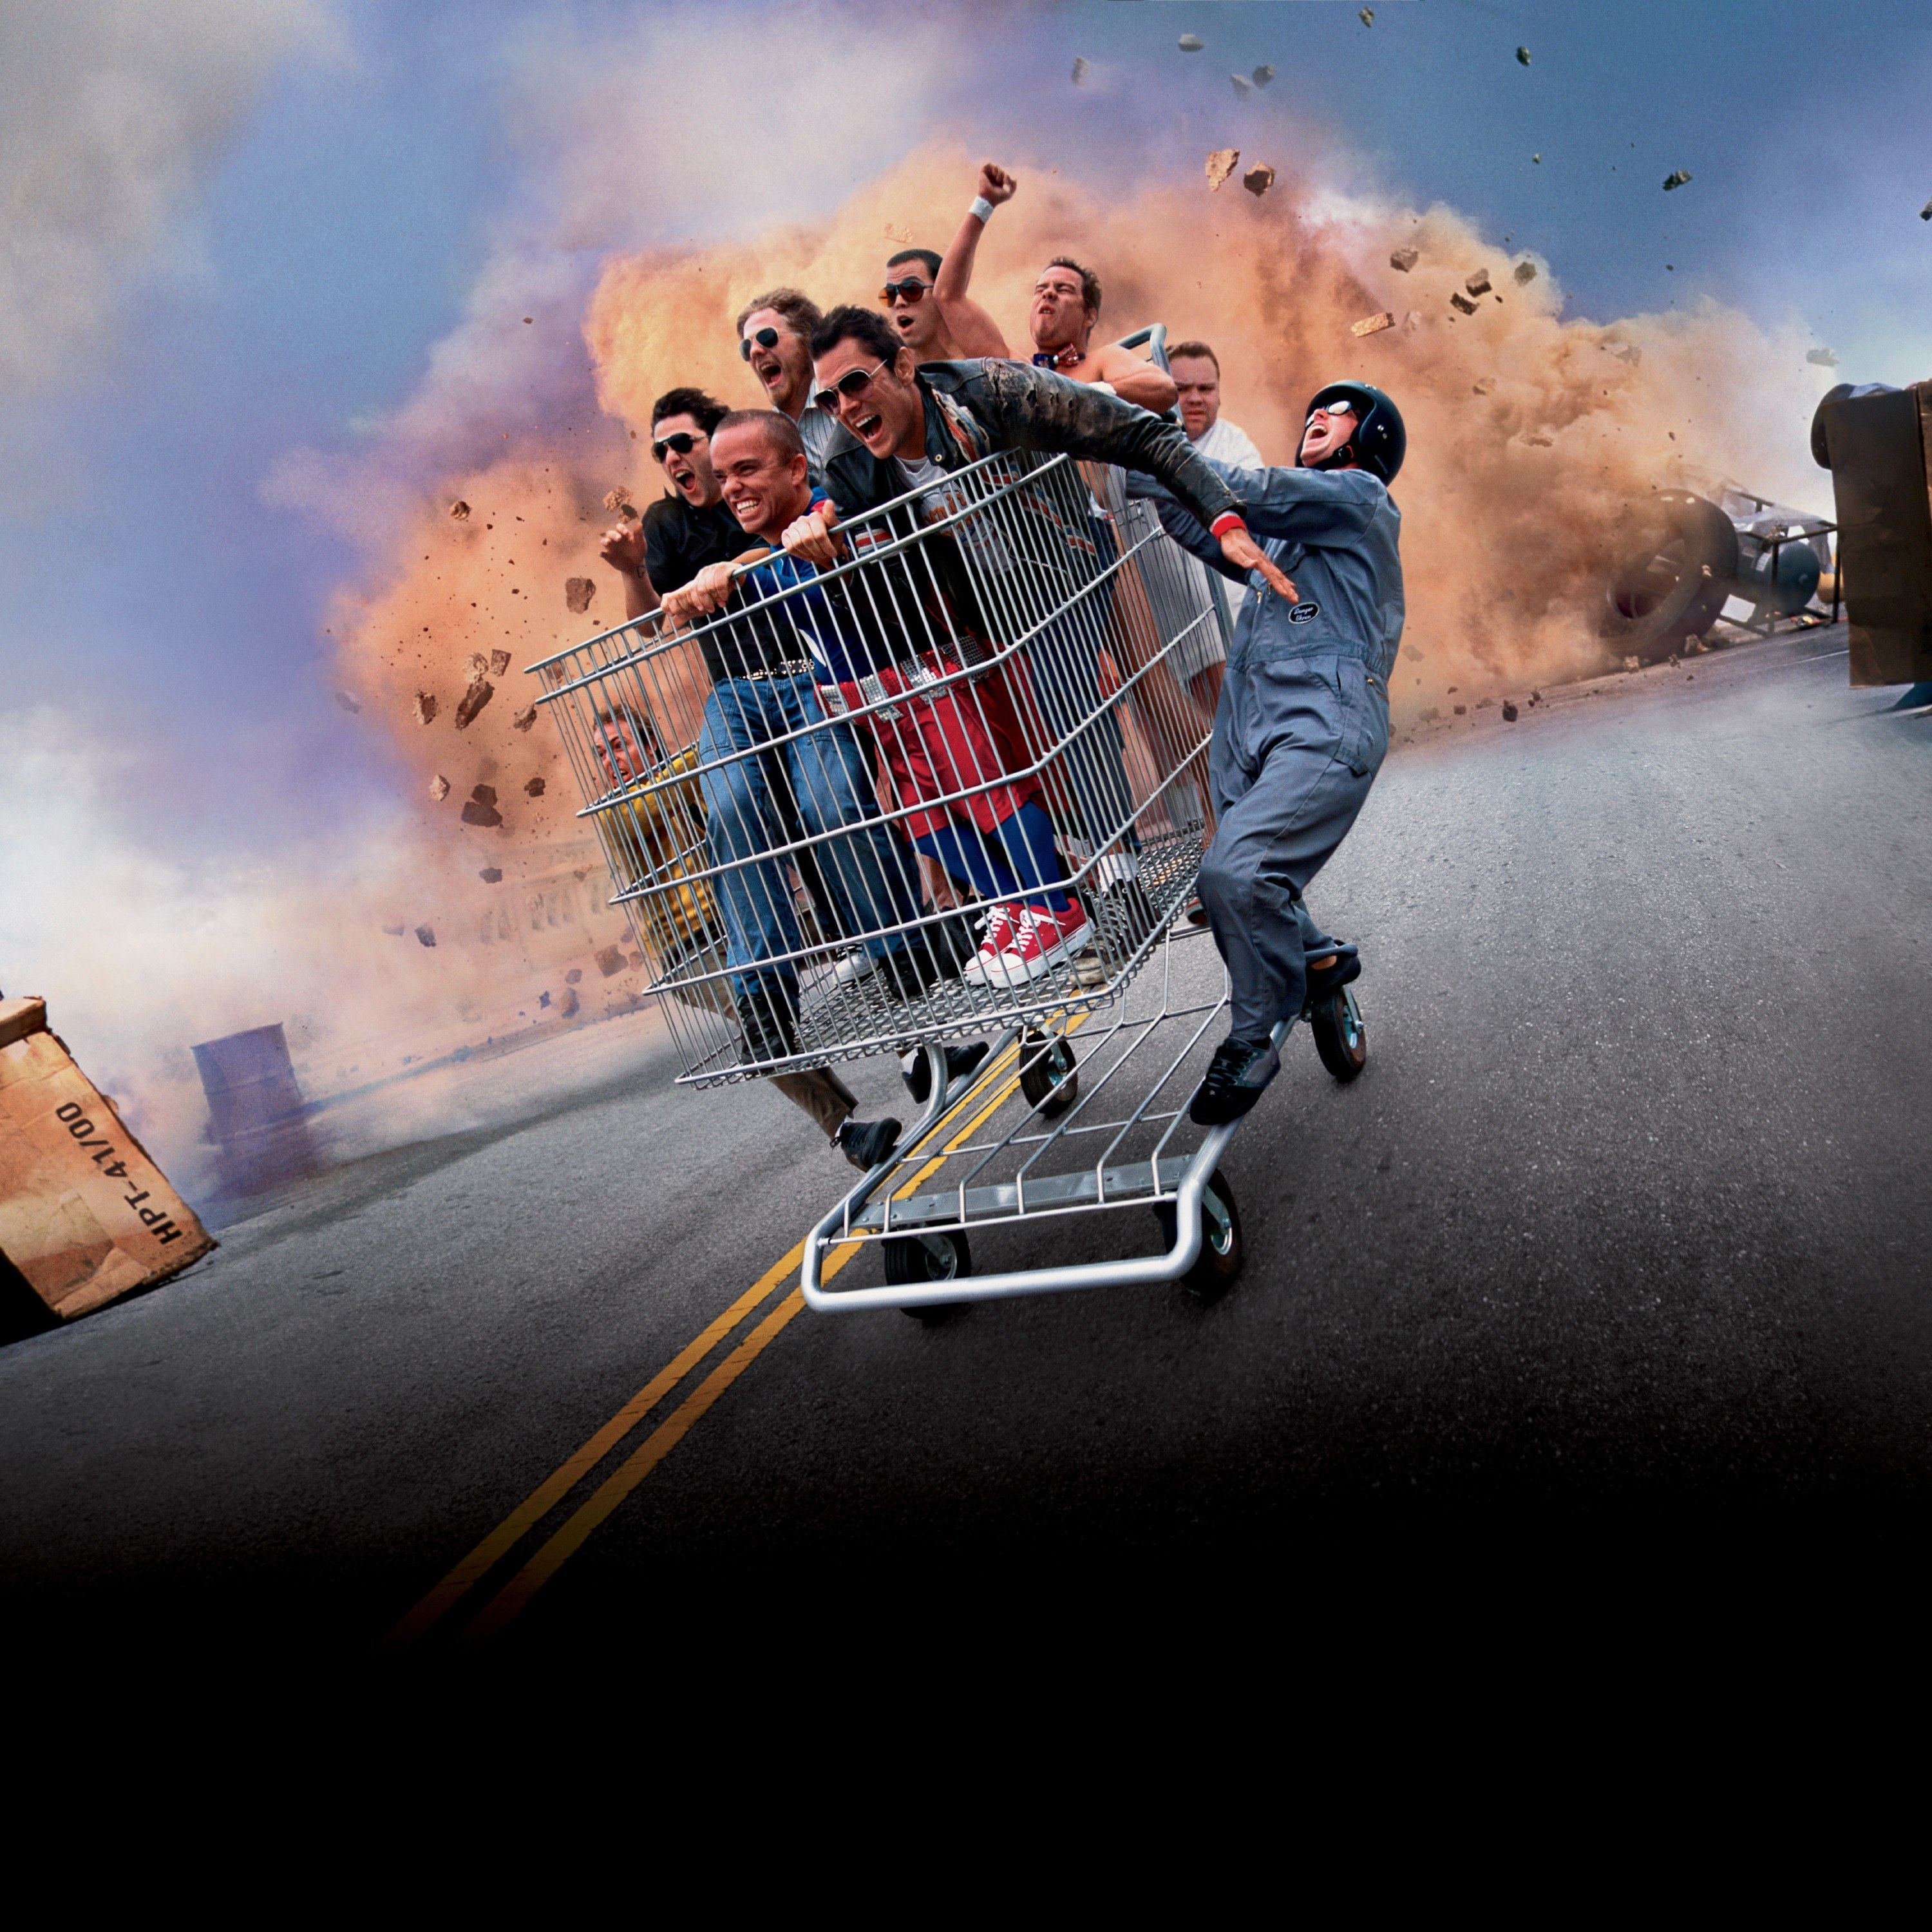 The Jackass crew riding in a shopping cart